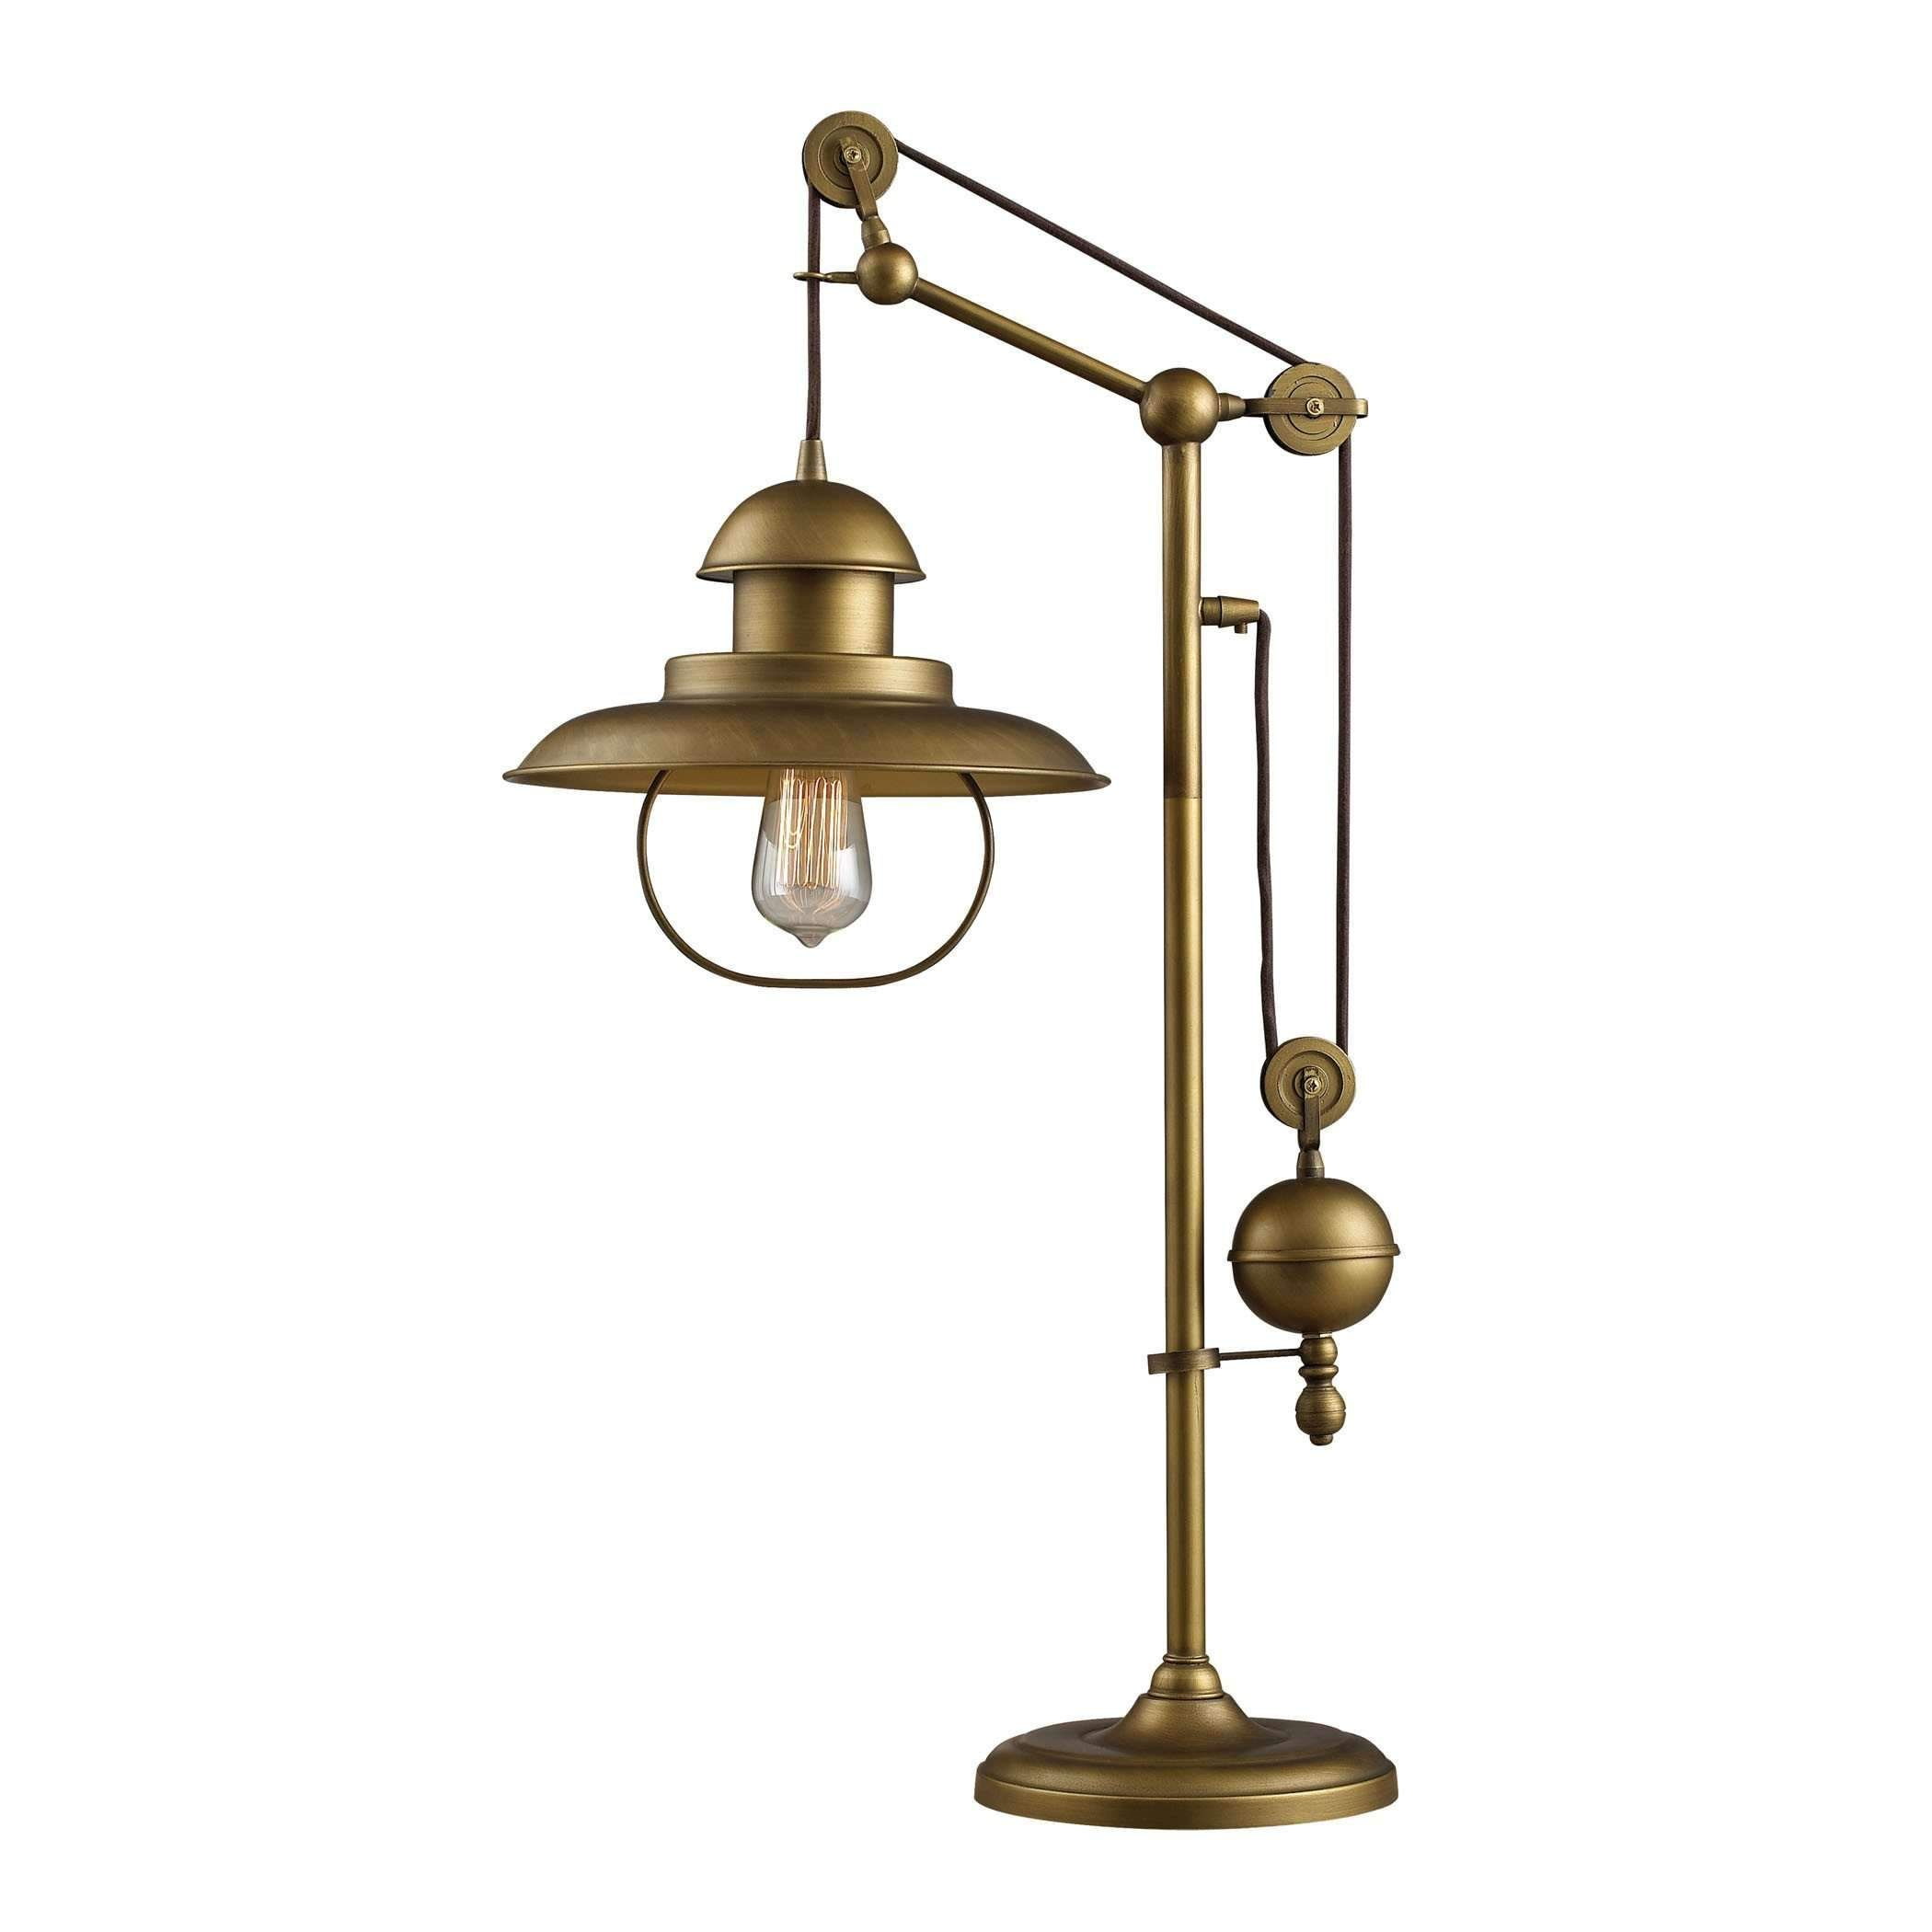 Farmhouse table lamp in antique brass with matching metal